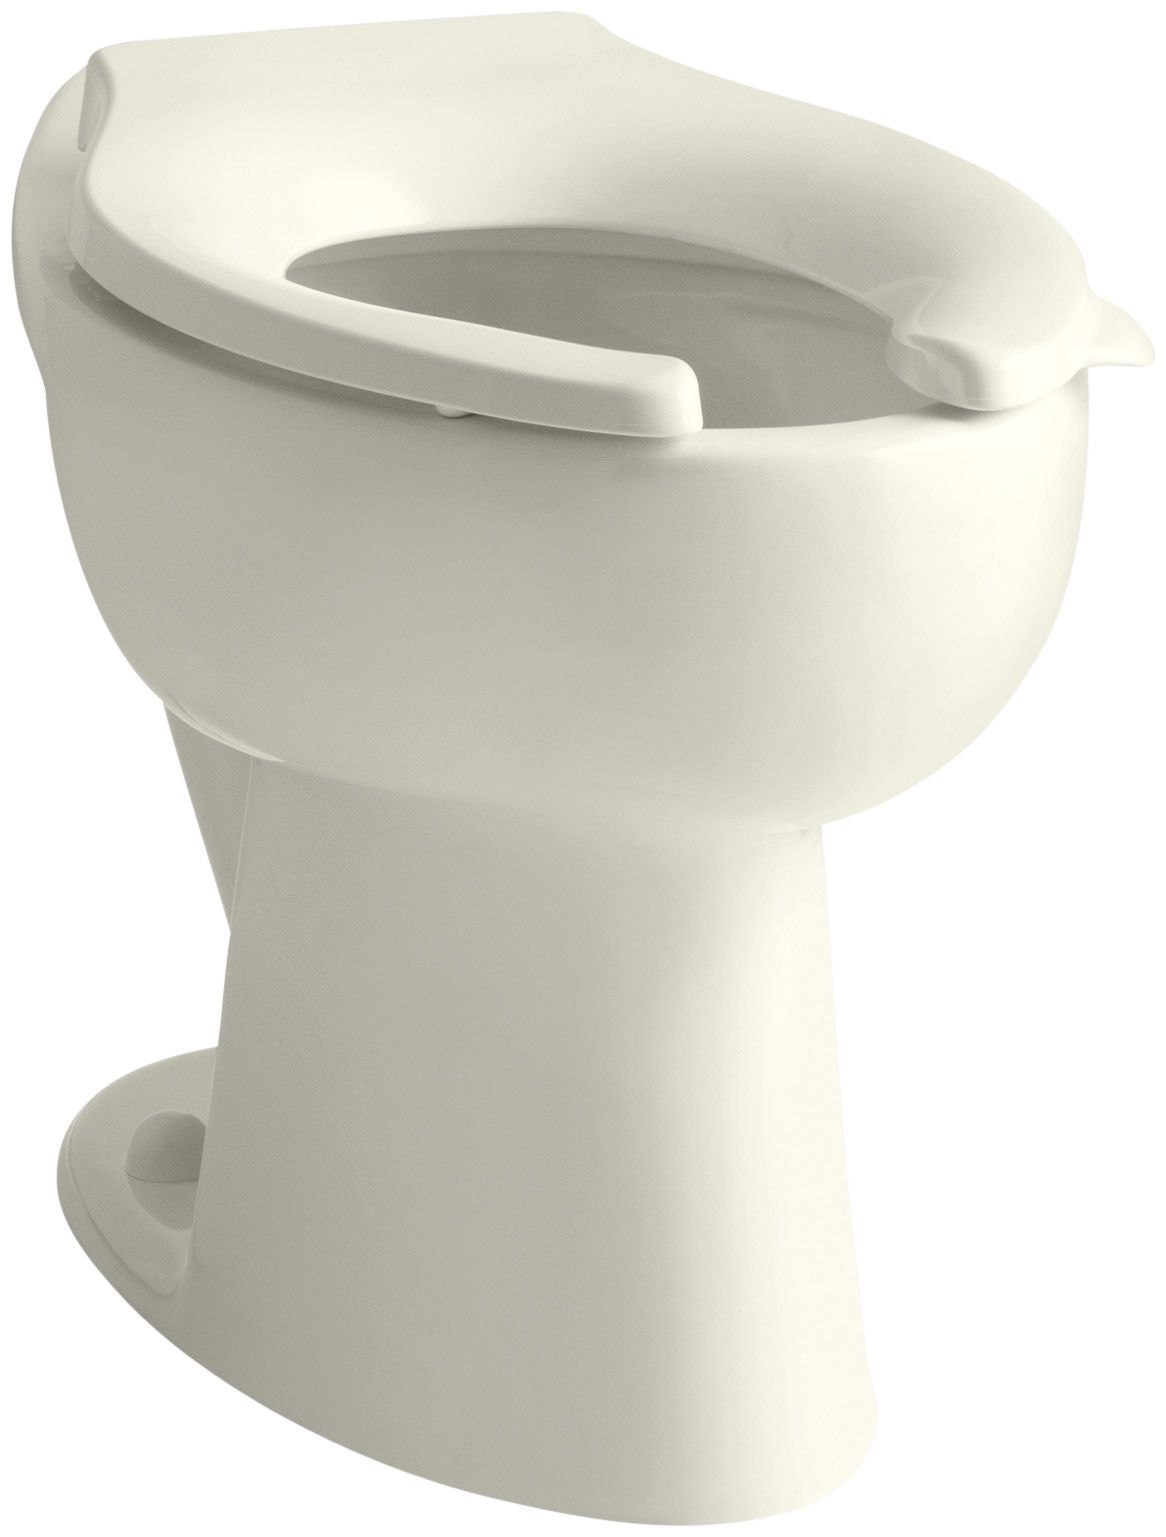 Highcrest 1 6 Gpf 16 1 2 Ada Elongated Toilet Bowl With Rear